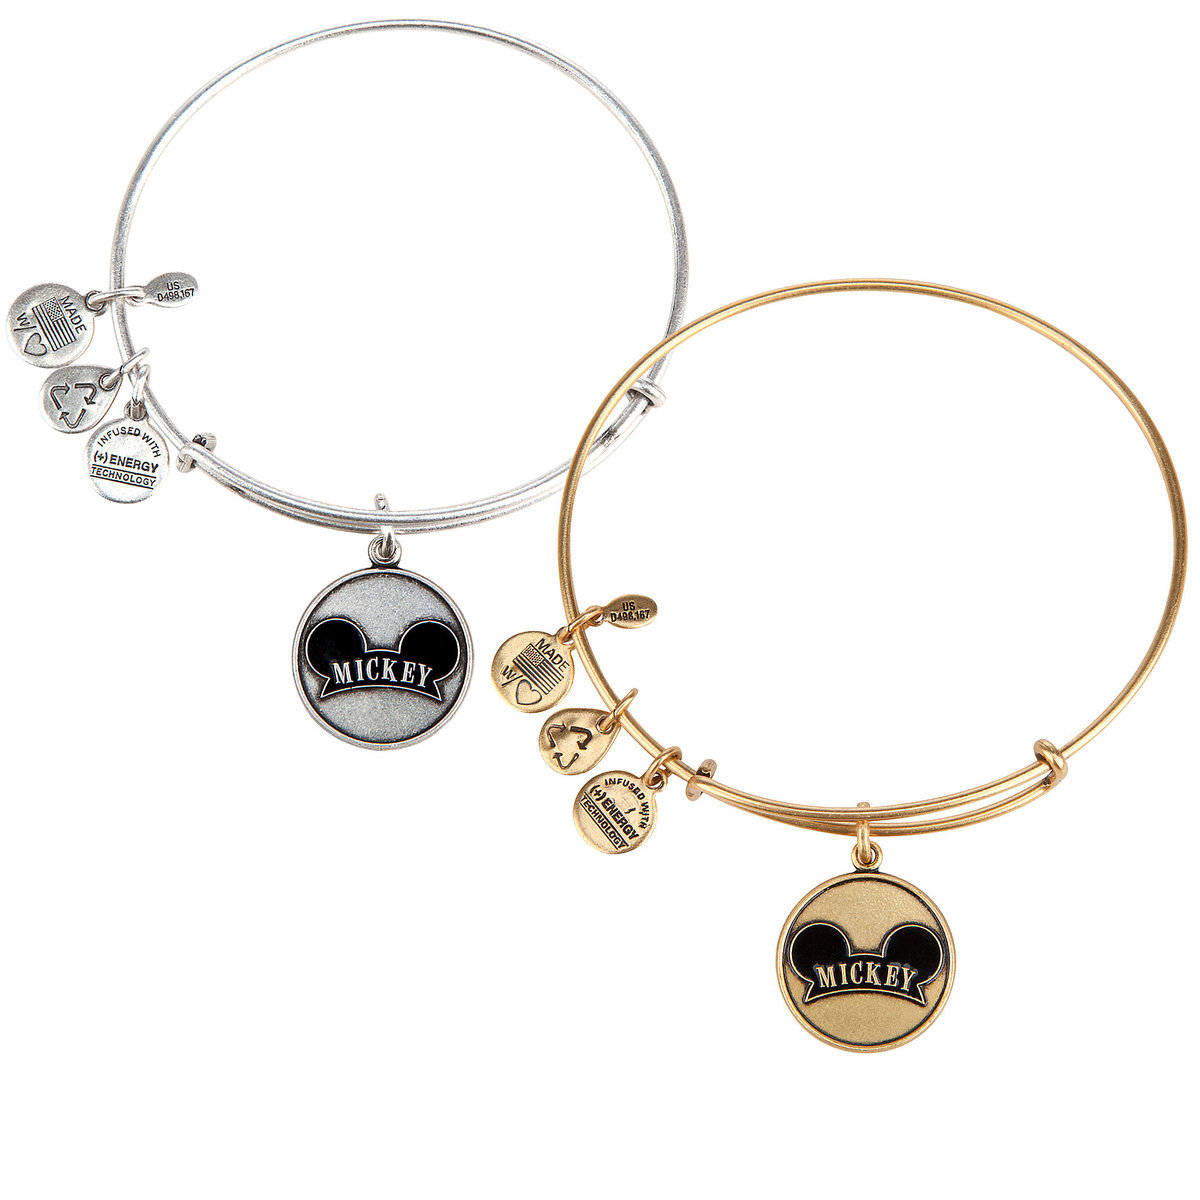 Mickey Mouse Cloisonne Charm Bangle by Alex and Ani